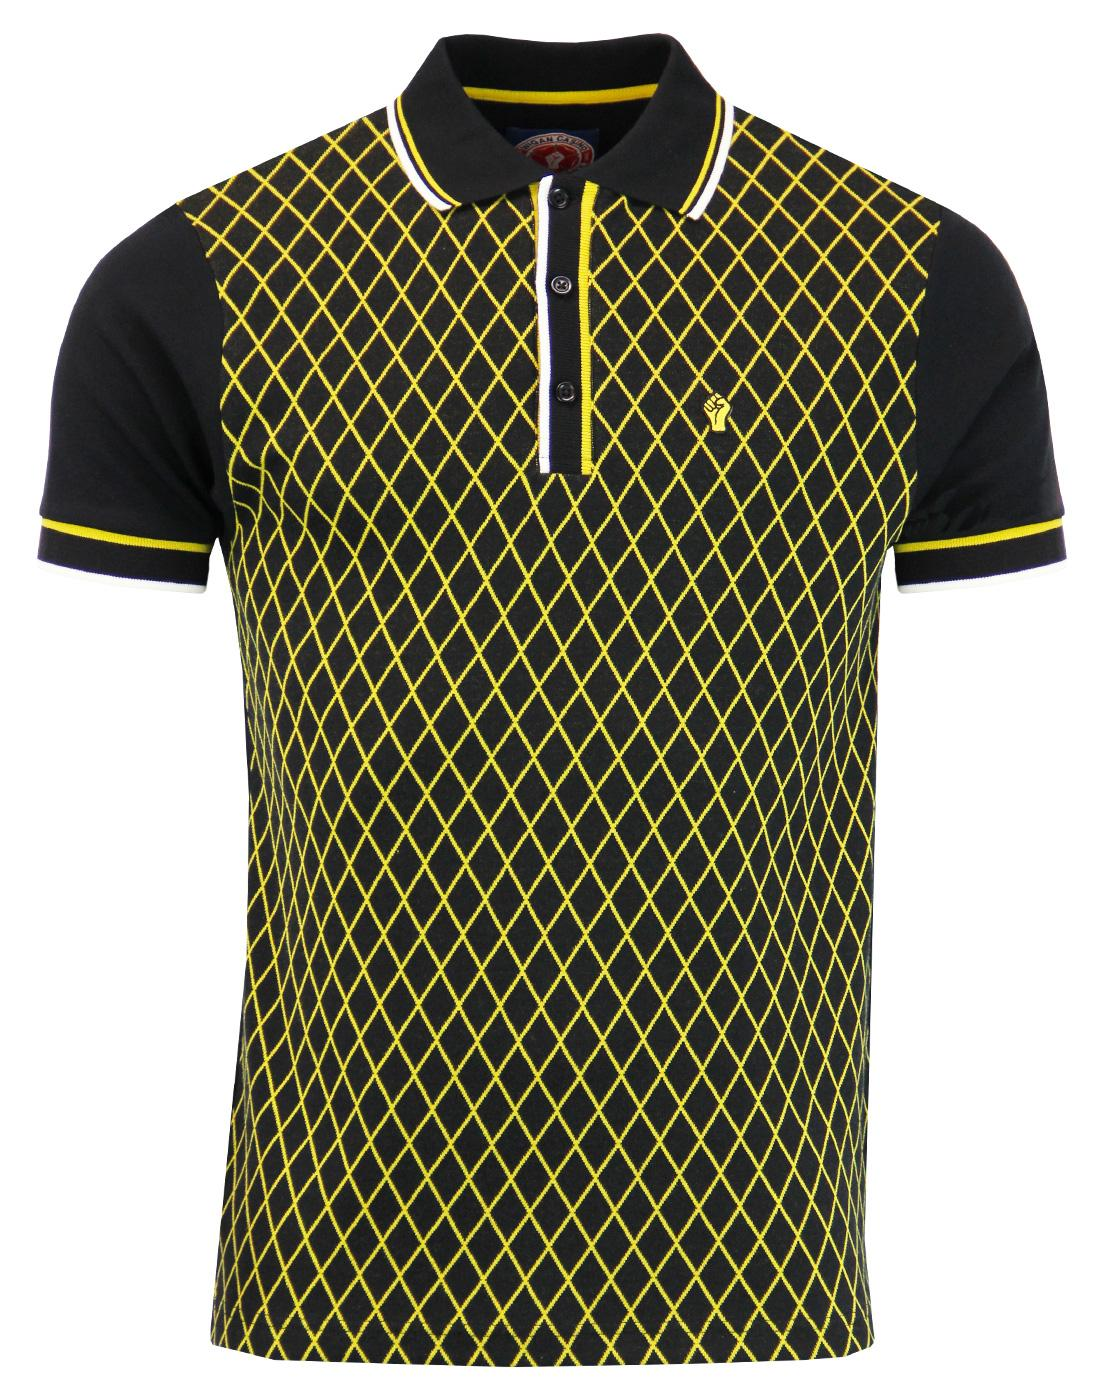 WIGAN CASINO Northern Soul Mod Diamond Front Polo